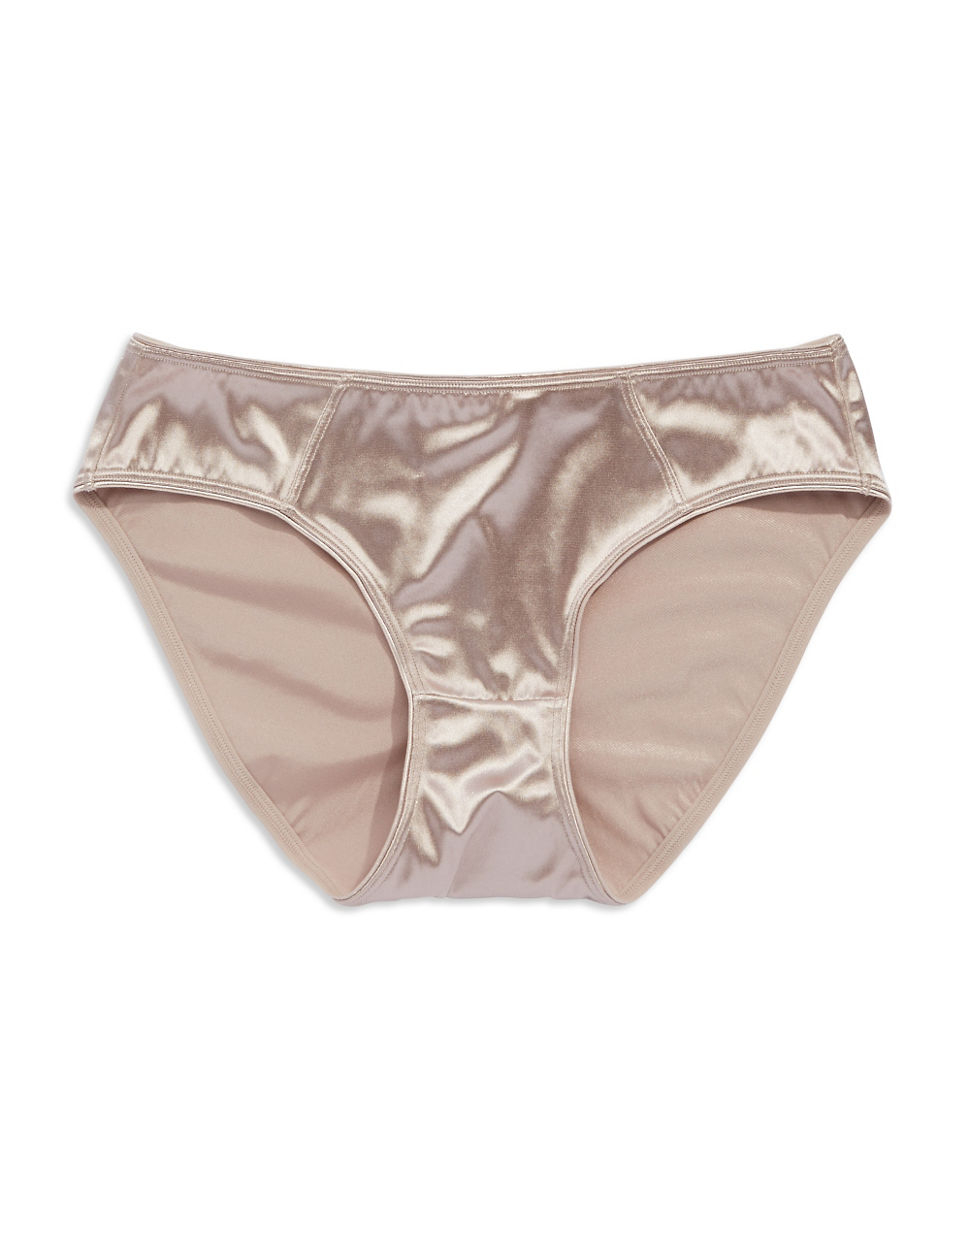 c4b8a4673f05 Fine Lines Satin Brief Panties in Brown - Lyst